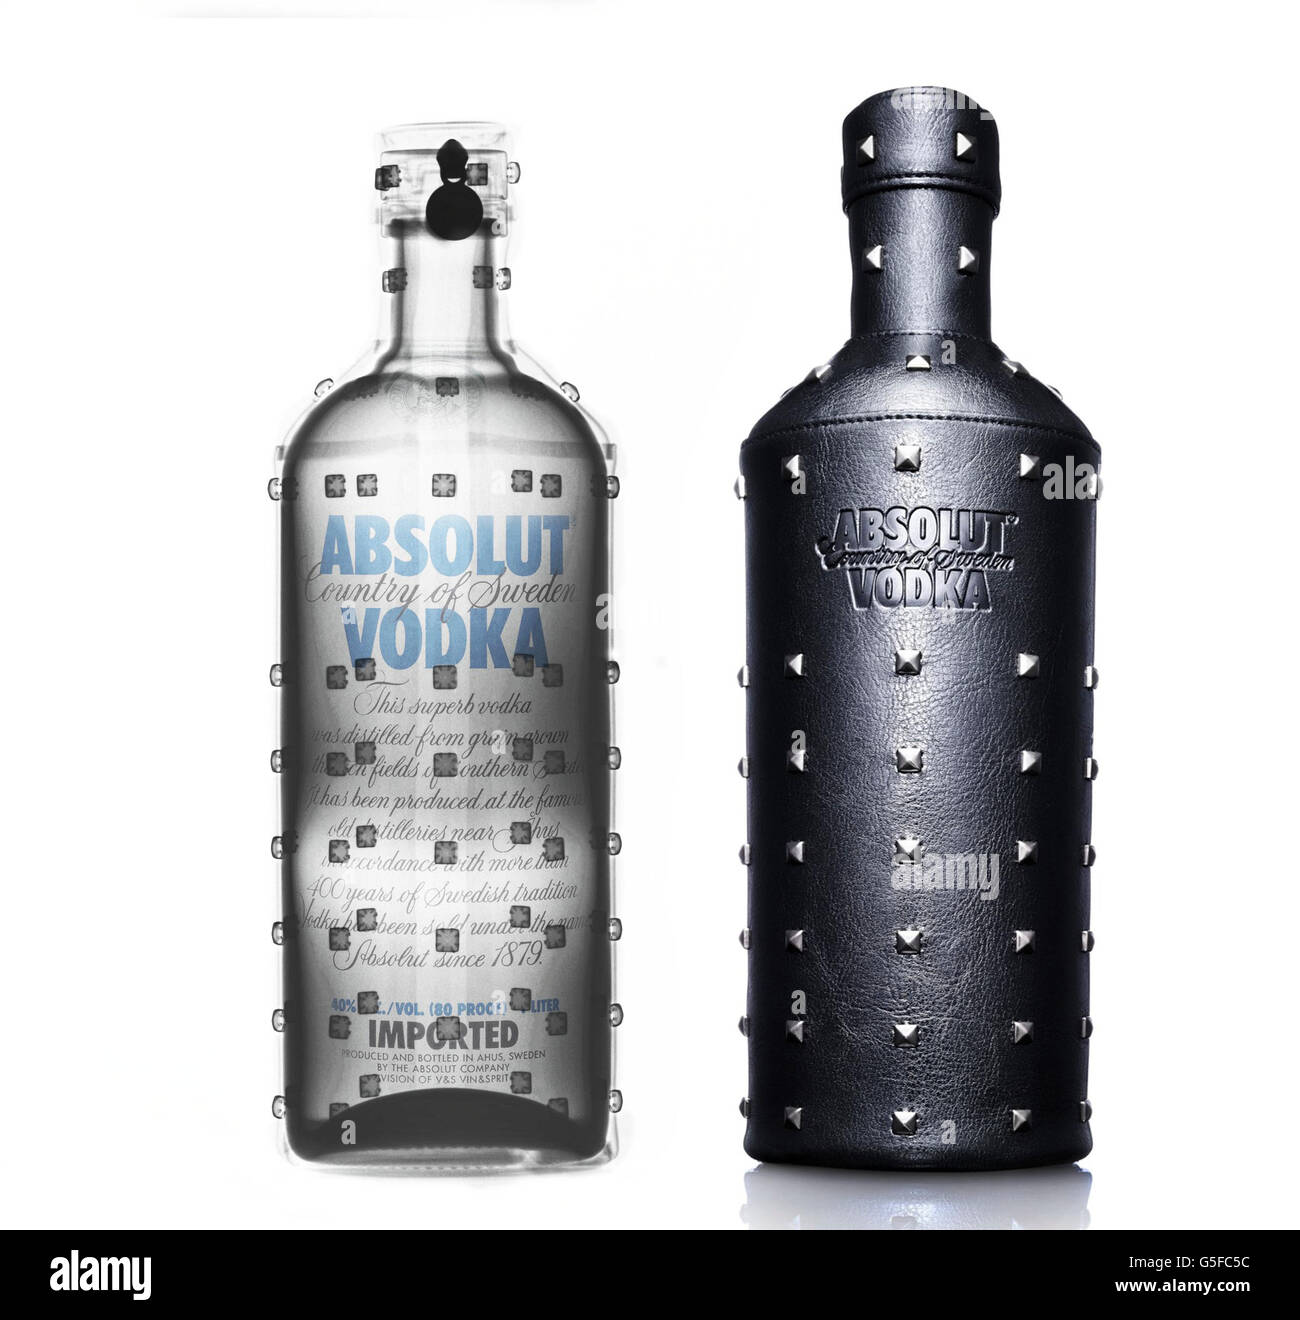 Absolut Vodka under x-ray - Stock Image